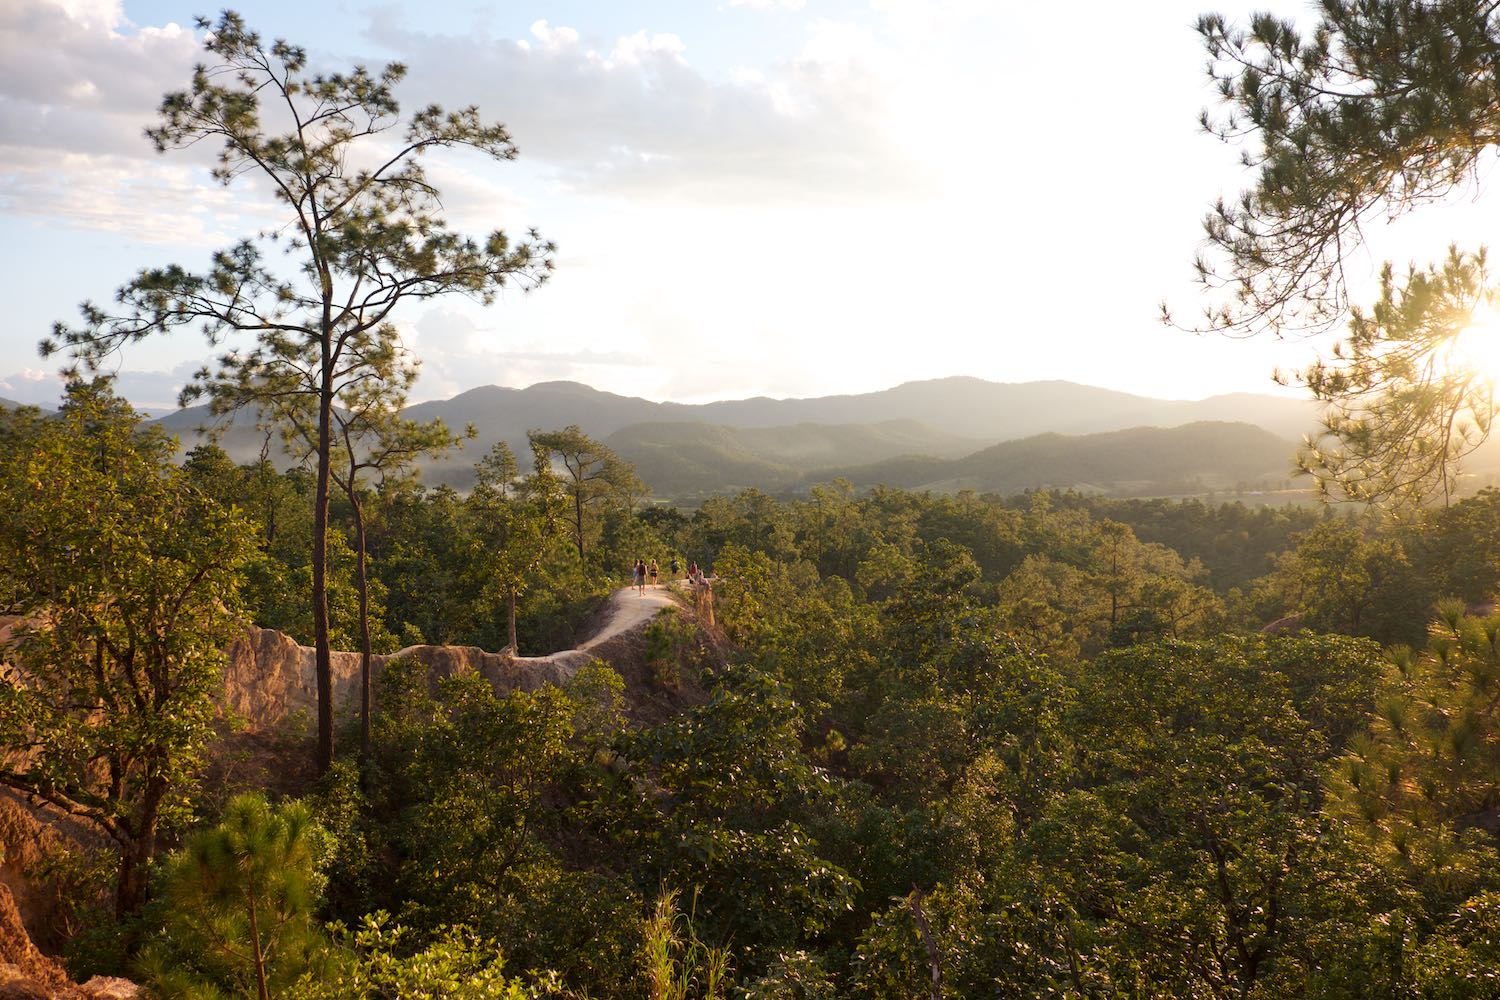 Pai Canyon at sunset is a worthwhile adventure